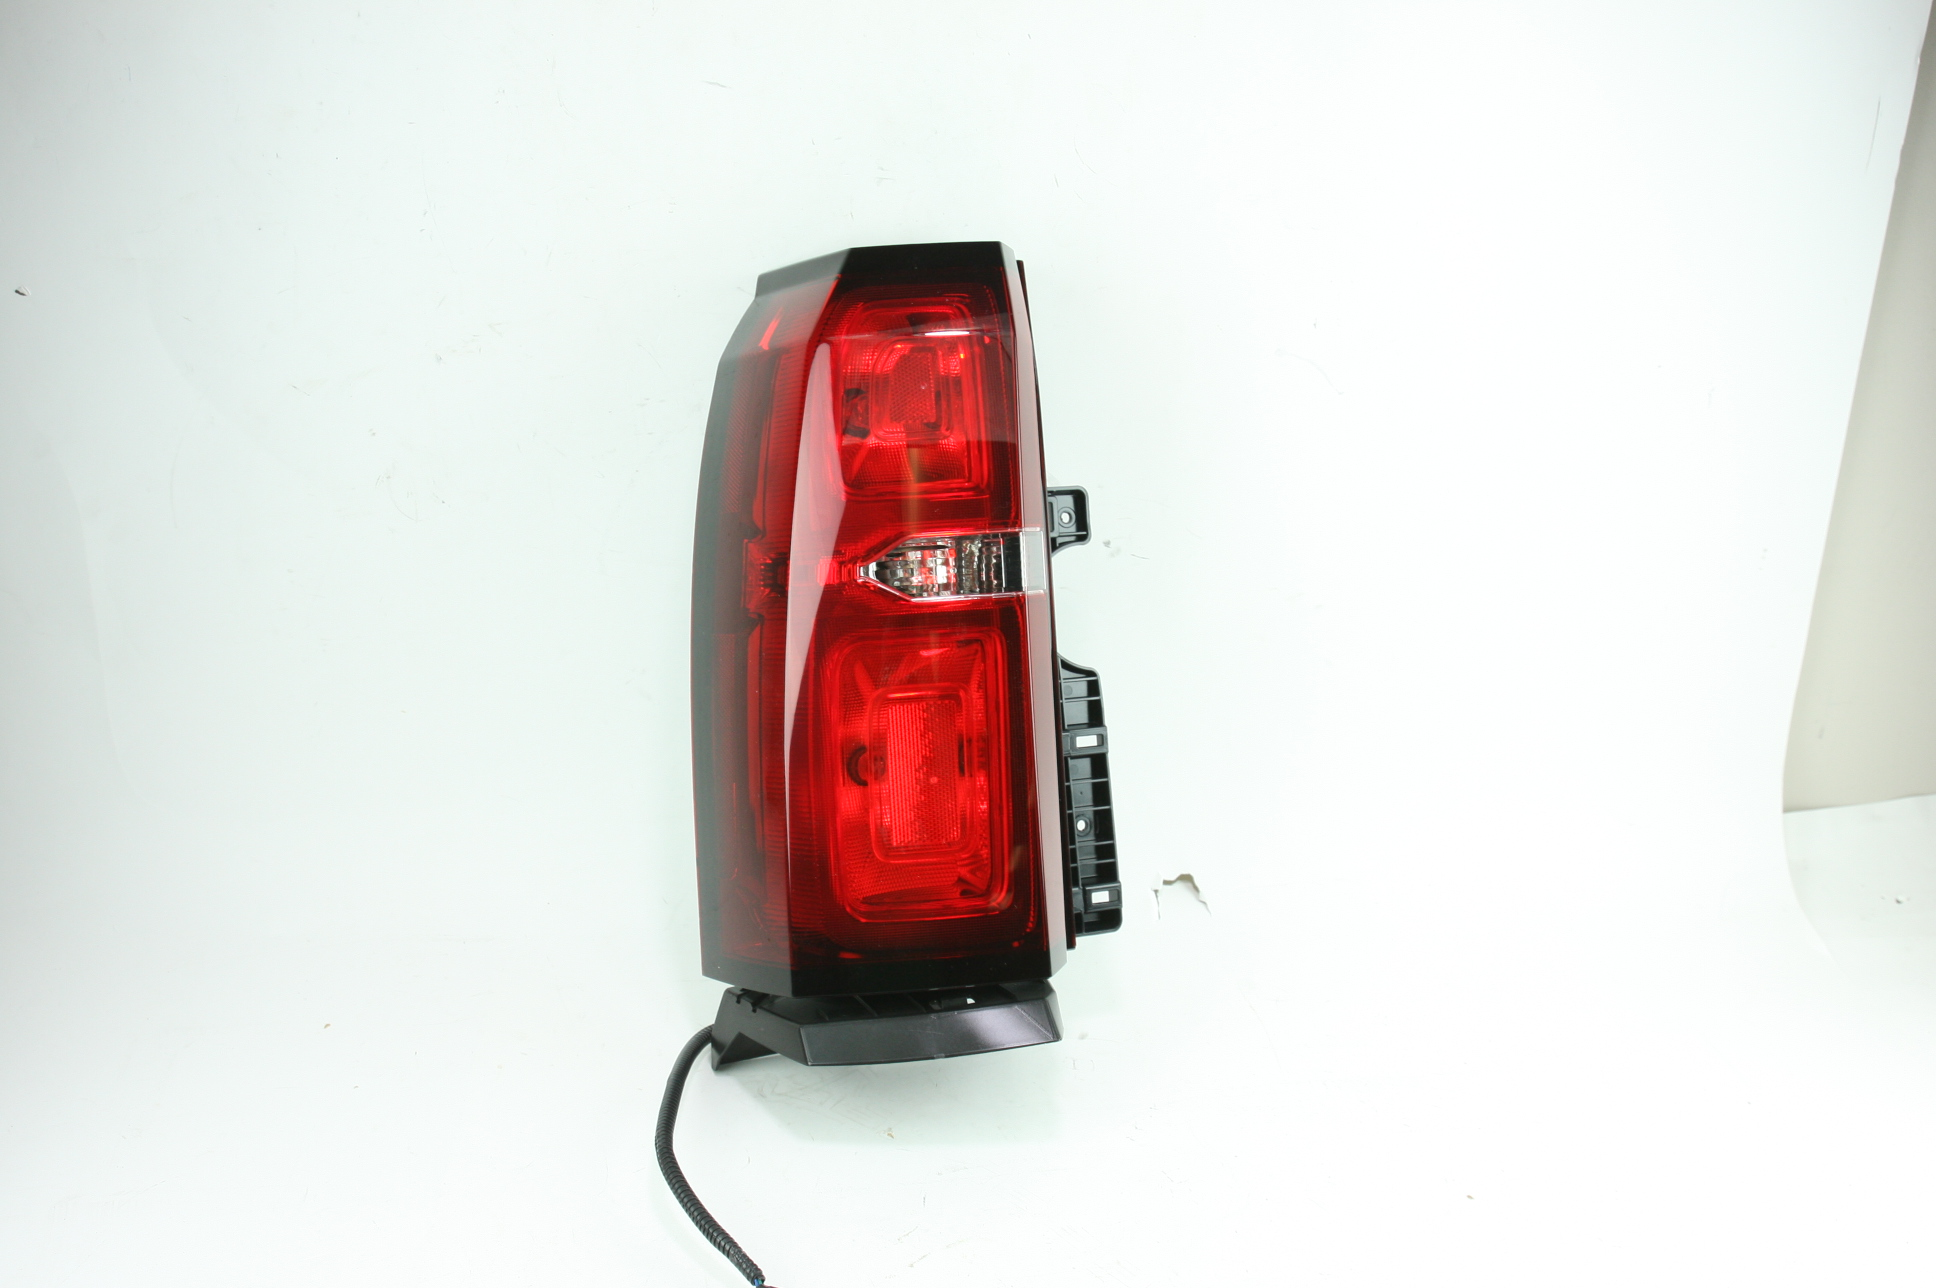 New Genuine OEM 23407432 GM Left Tail Lamp 15-19 Chevy Tahoe & Suburban NIP - image 1